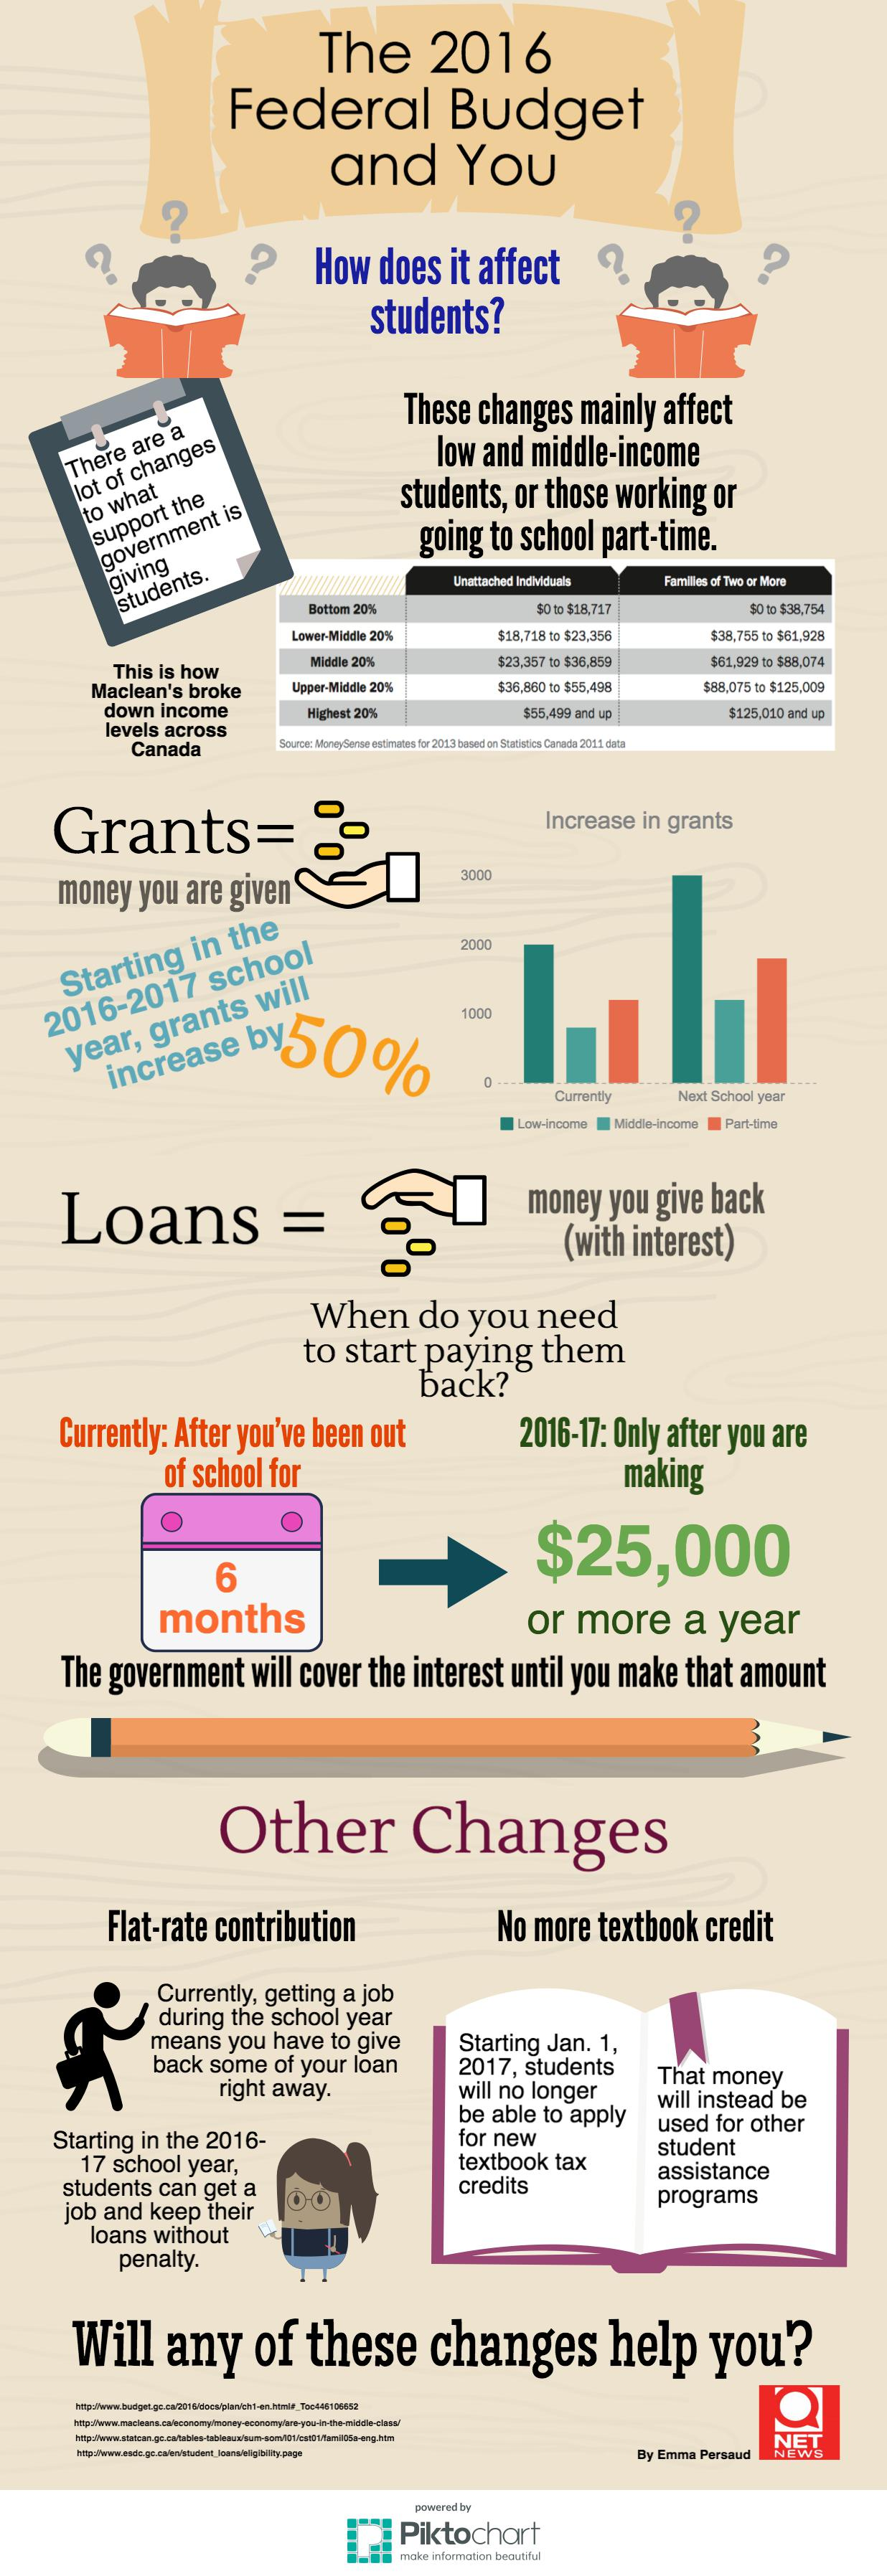 Students and the 2016 federal budget infographic